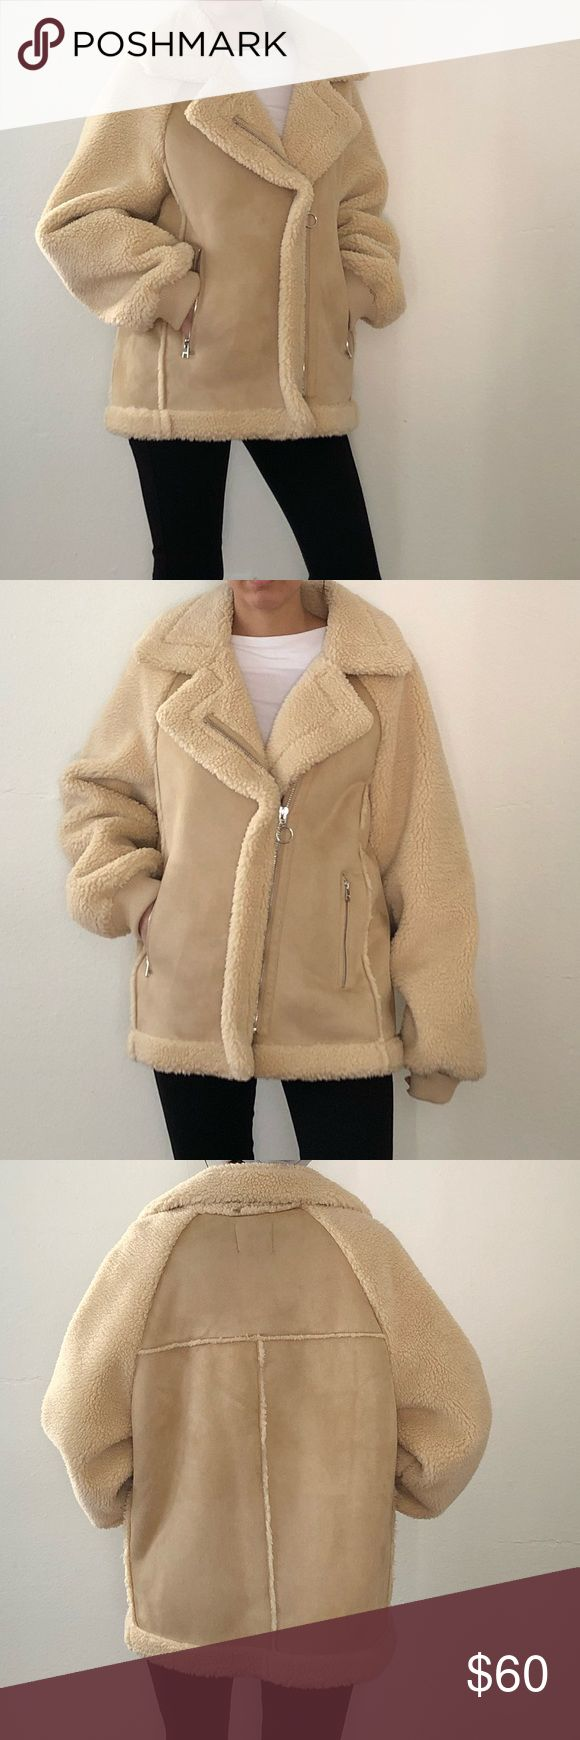 NWT Faux Shearling Jacket Brand is Bershka carried by ASOS